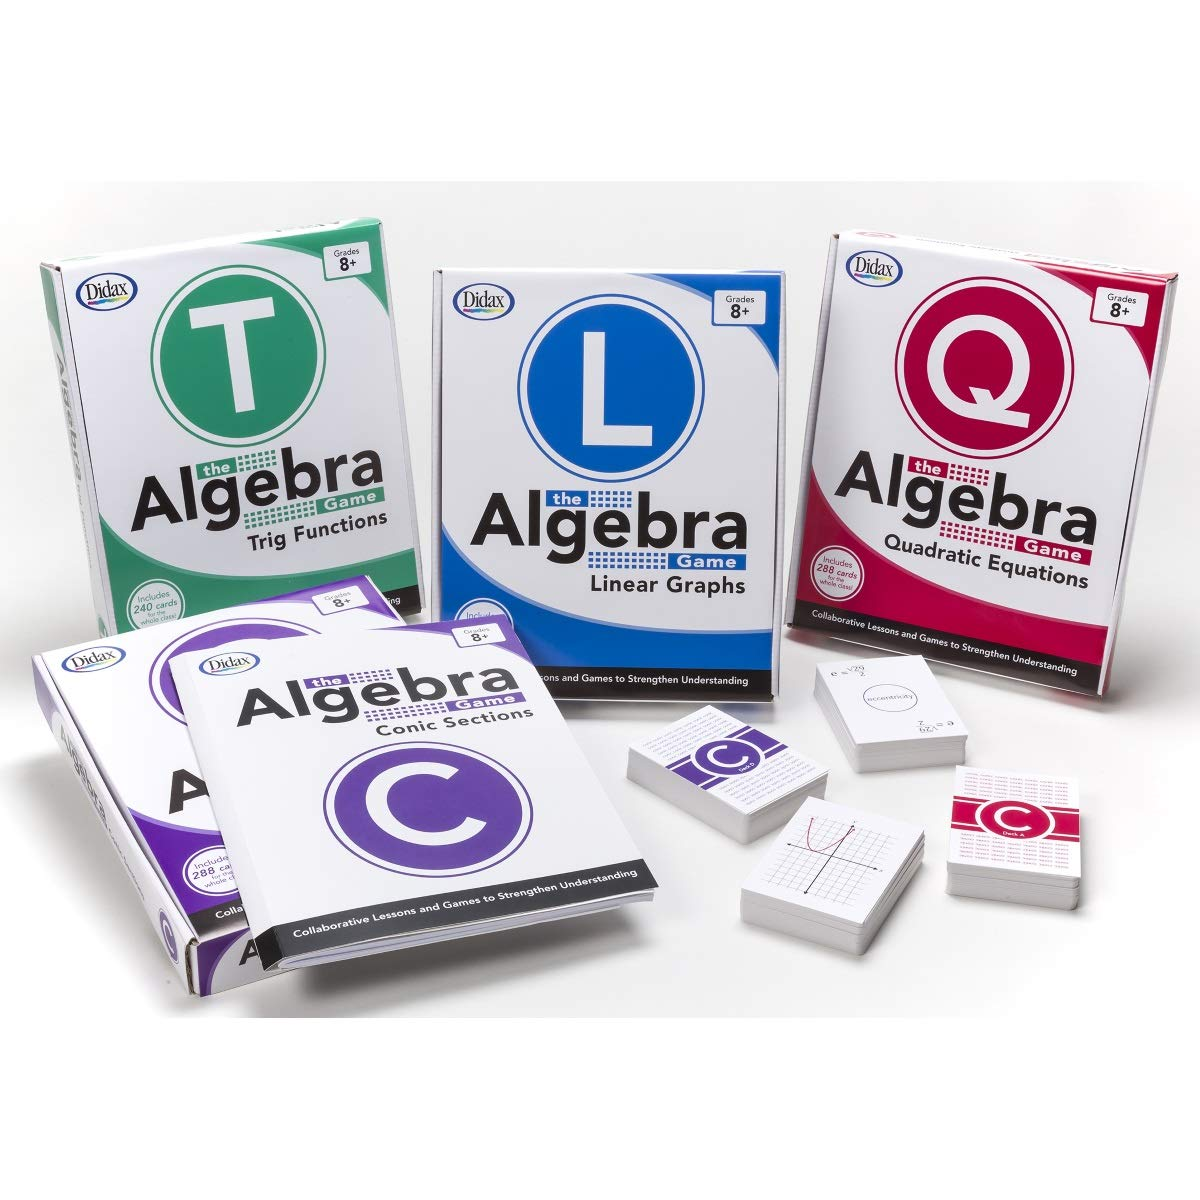 Didax Educational Resources The Algebra Game: Quadratic Equations Basic Educational Game